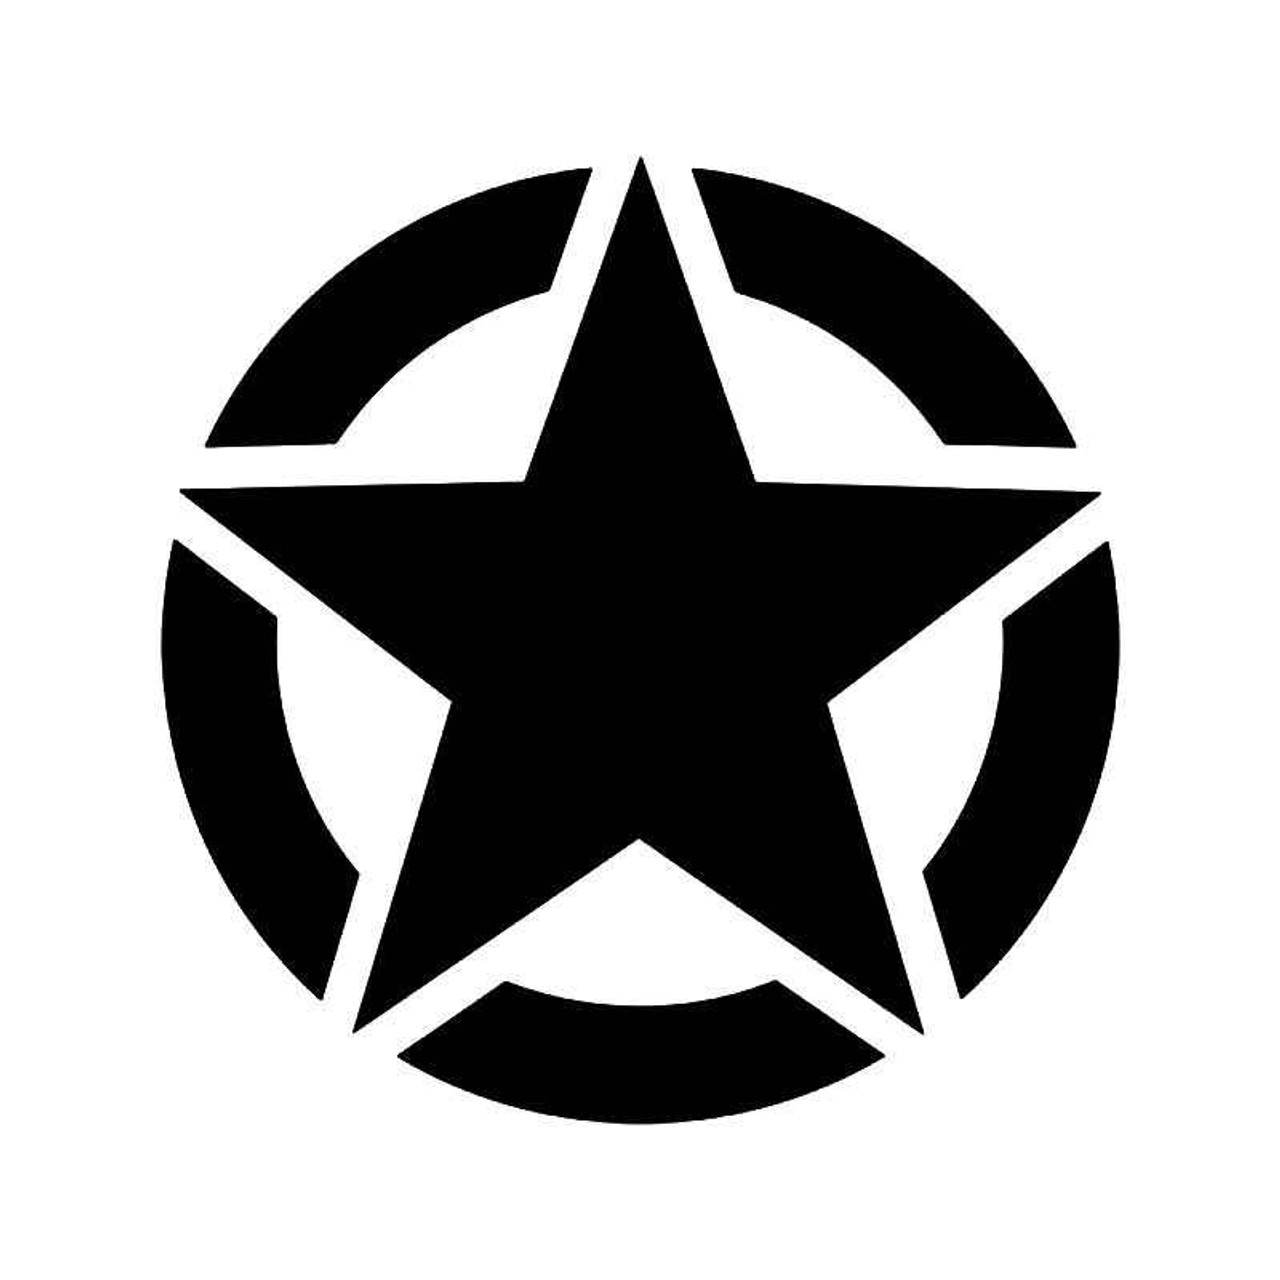 Us army military star ww2 vinyl sticker